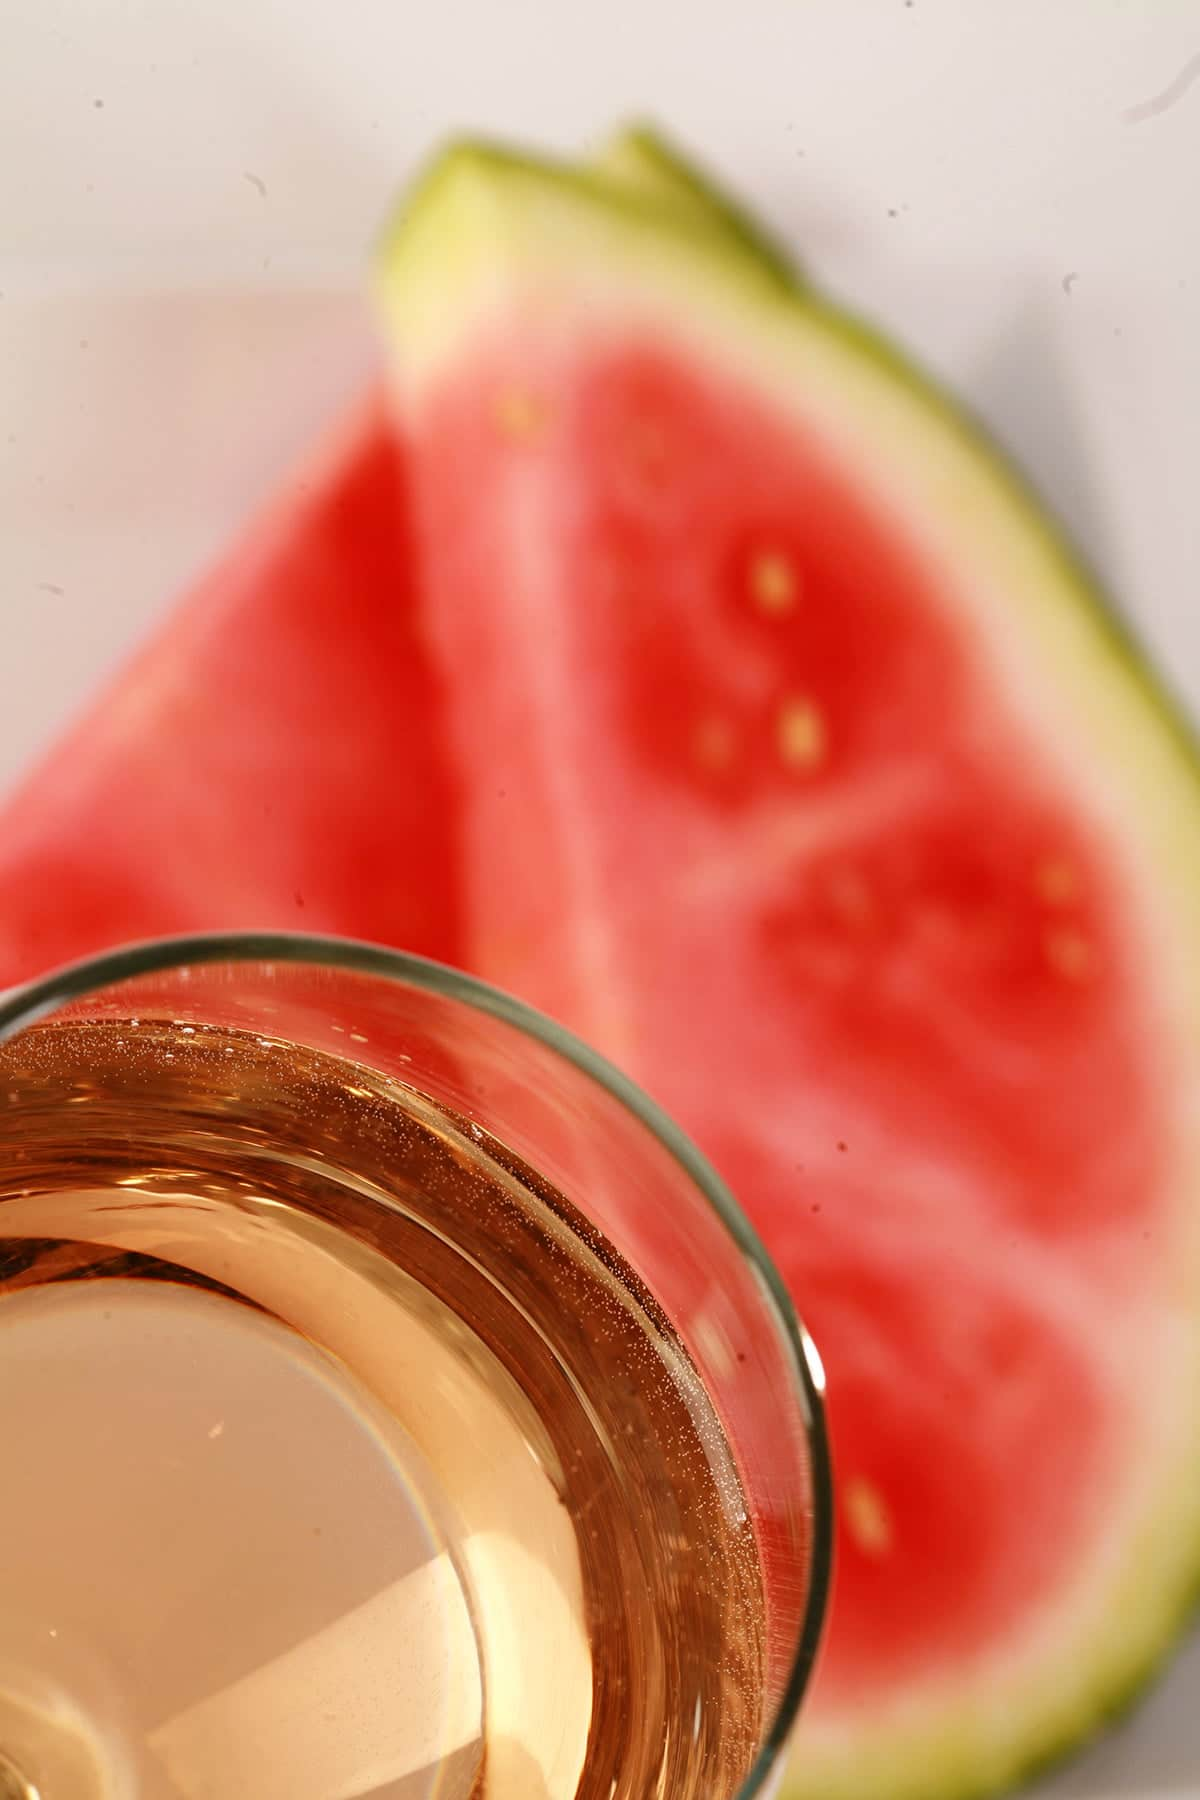 A glass of pale pink wine, next to a white plate with watermelon slices on it.